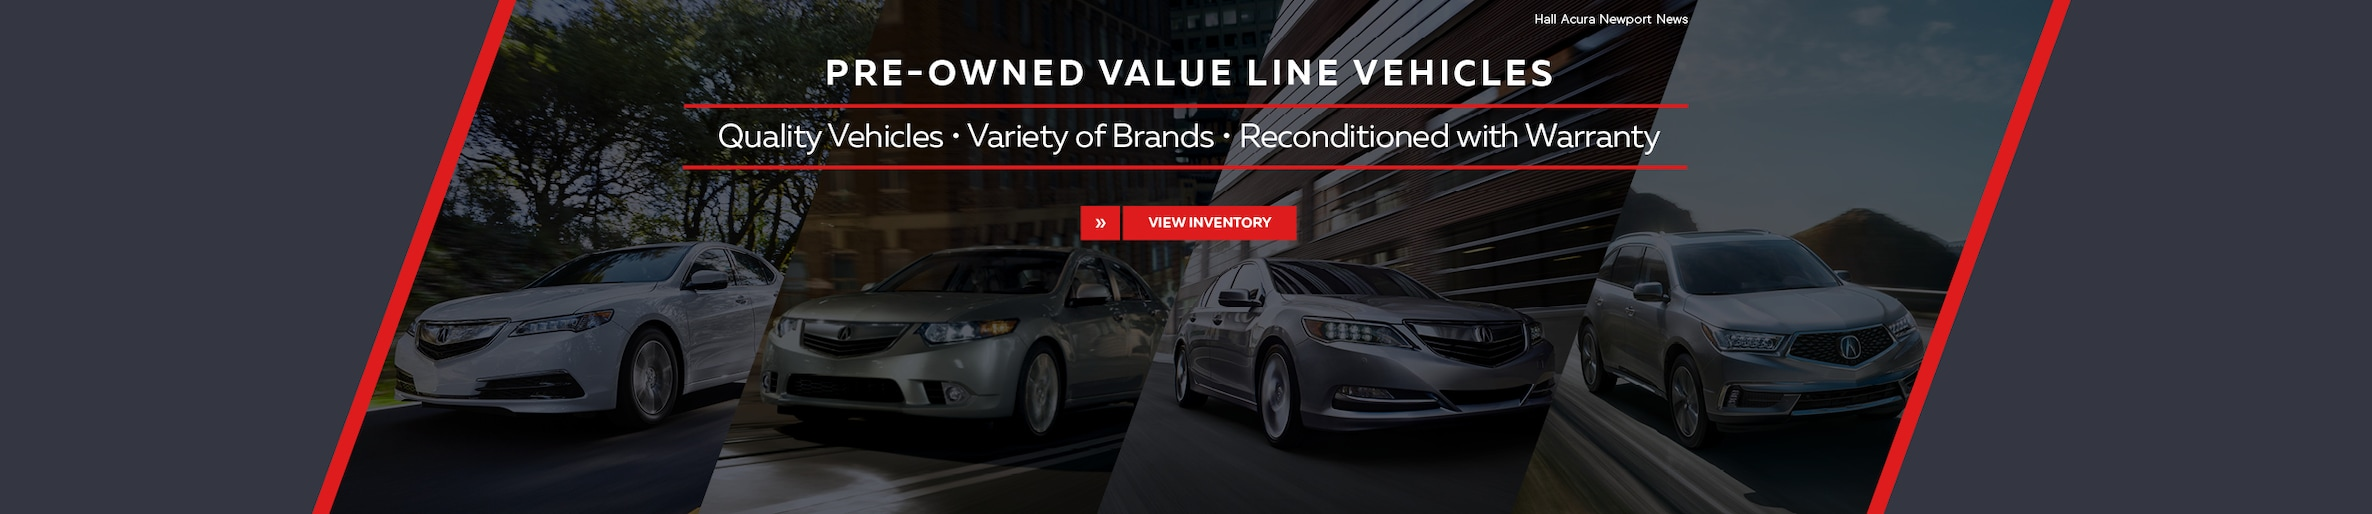 see in over woodbridge lorton or of vehicles for less details parts interior with msrp and complete dc more va year your miles dealer mile near mdx than acura